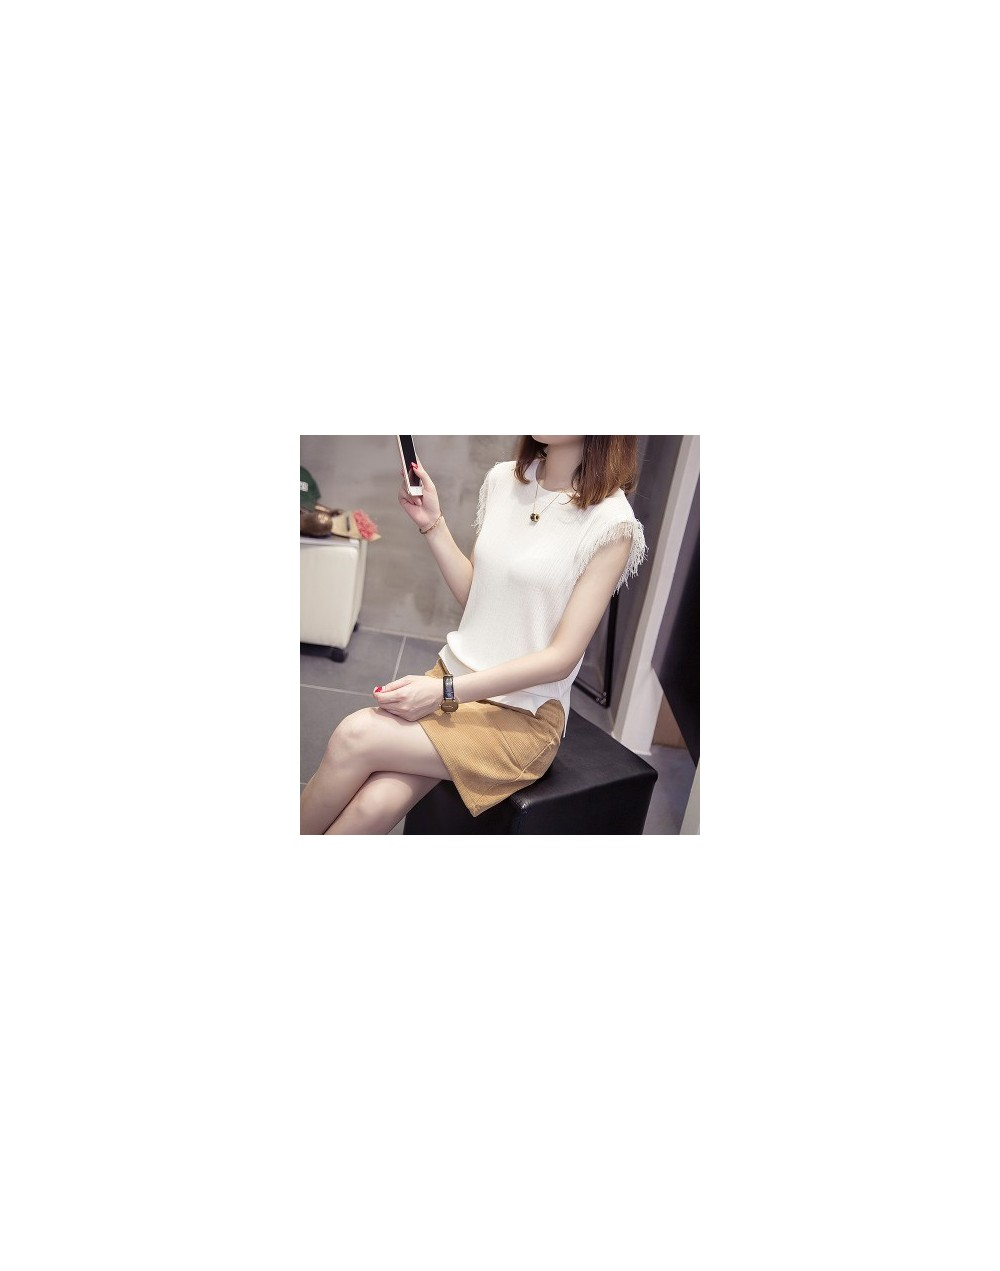 2018 NEW Straps for girls summer wear ice cream knitted sweater new style short fresh jacket sleeveless - see chart - 423995...